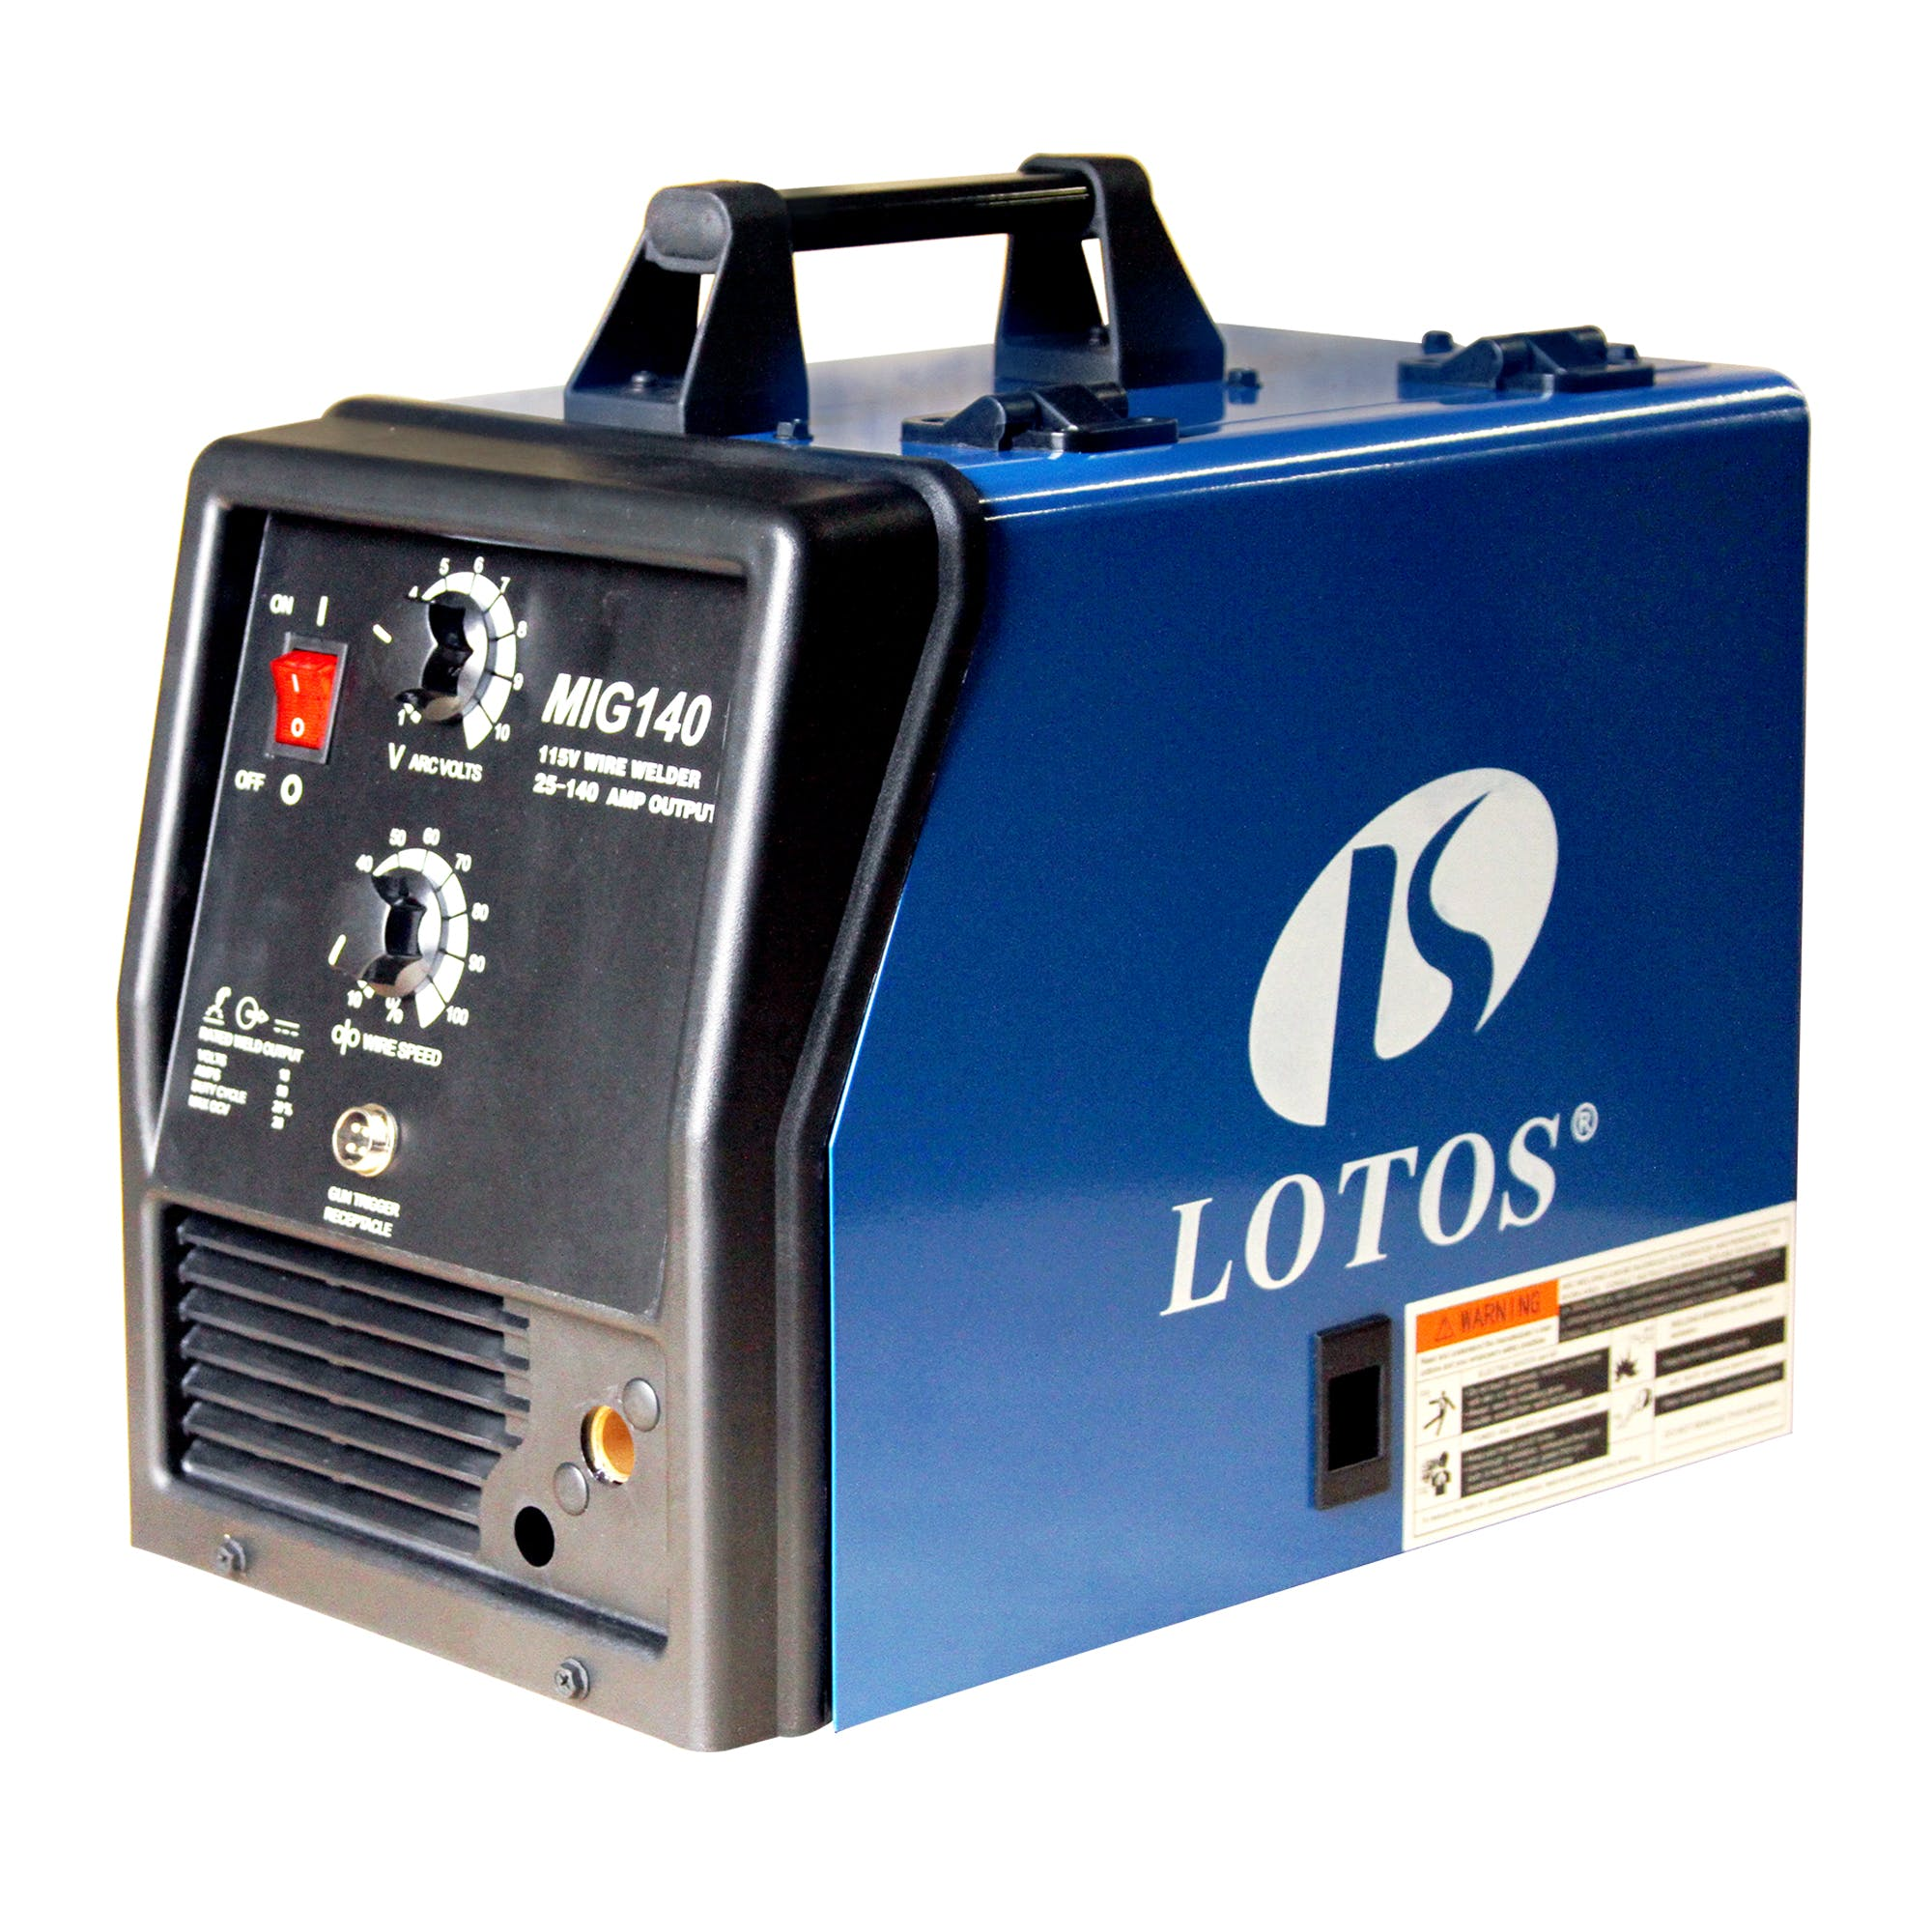 LOTOS MIG140 140A MIG Welder with SPOOL GUN Welder sold by LOTOS Technology